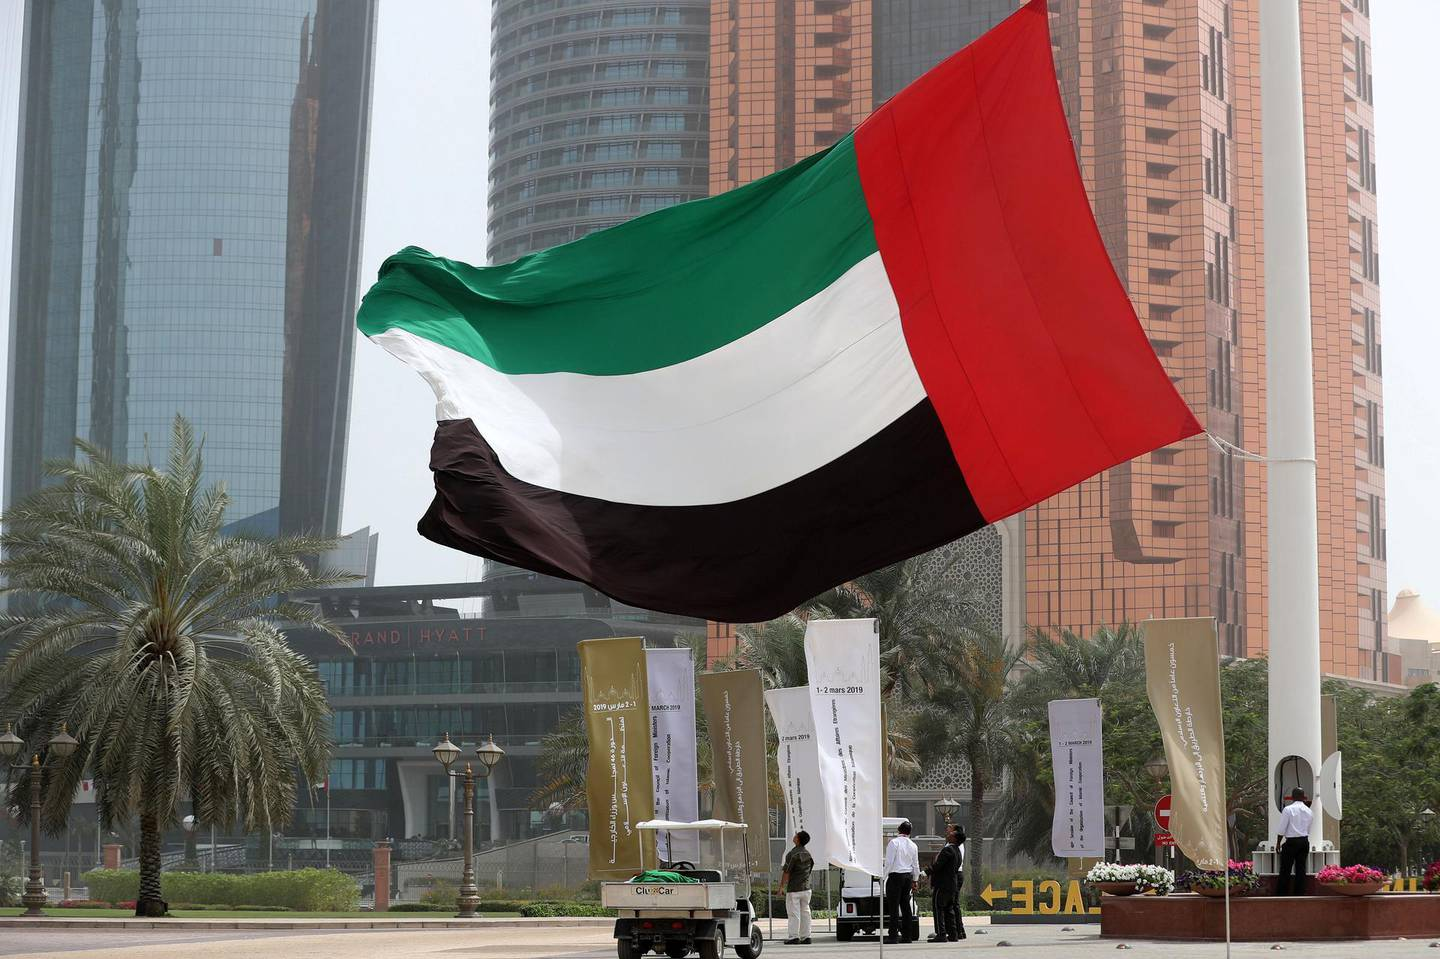 Abu Dhabi, United Arab Emirates - March 01, 2019: The UAE flag is replaced by a new one as the wind blows strong in Abu Dhabi. Friday the 1st of March 2019 at Emirates Palace, Abu Dhabi. Chris Whiteoak / The National